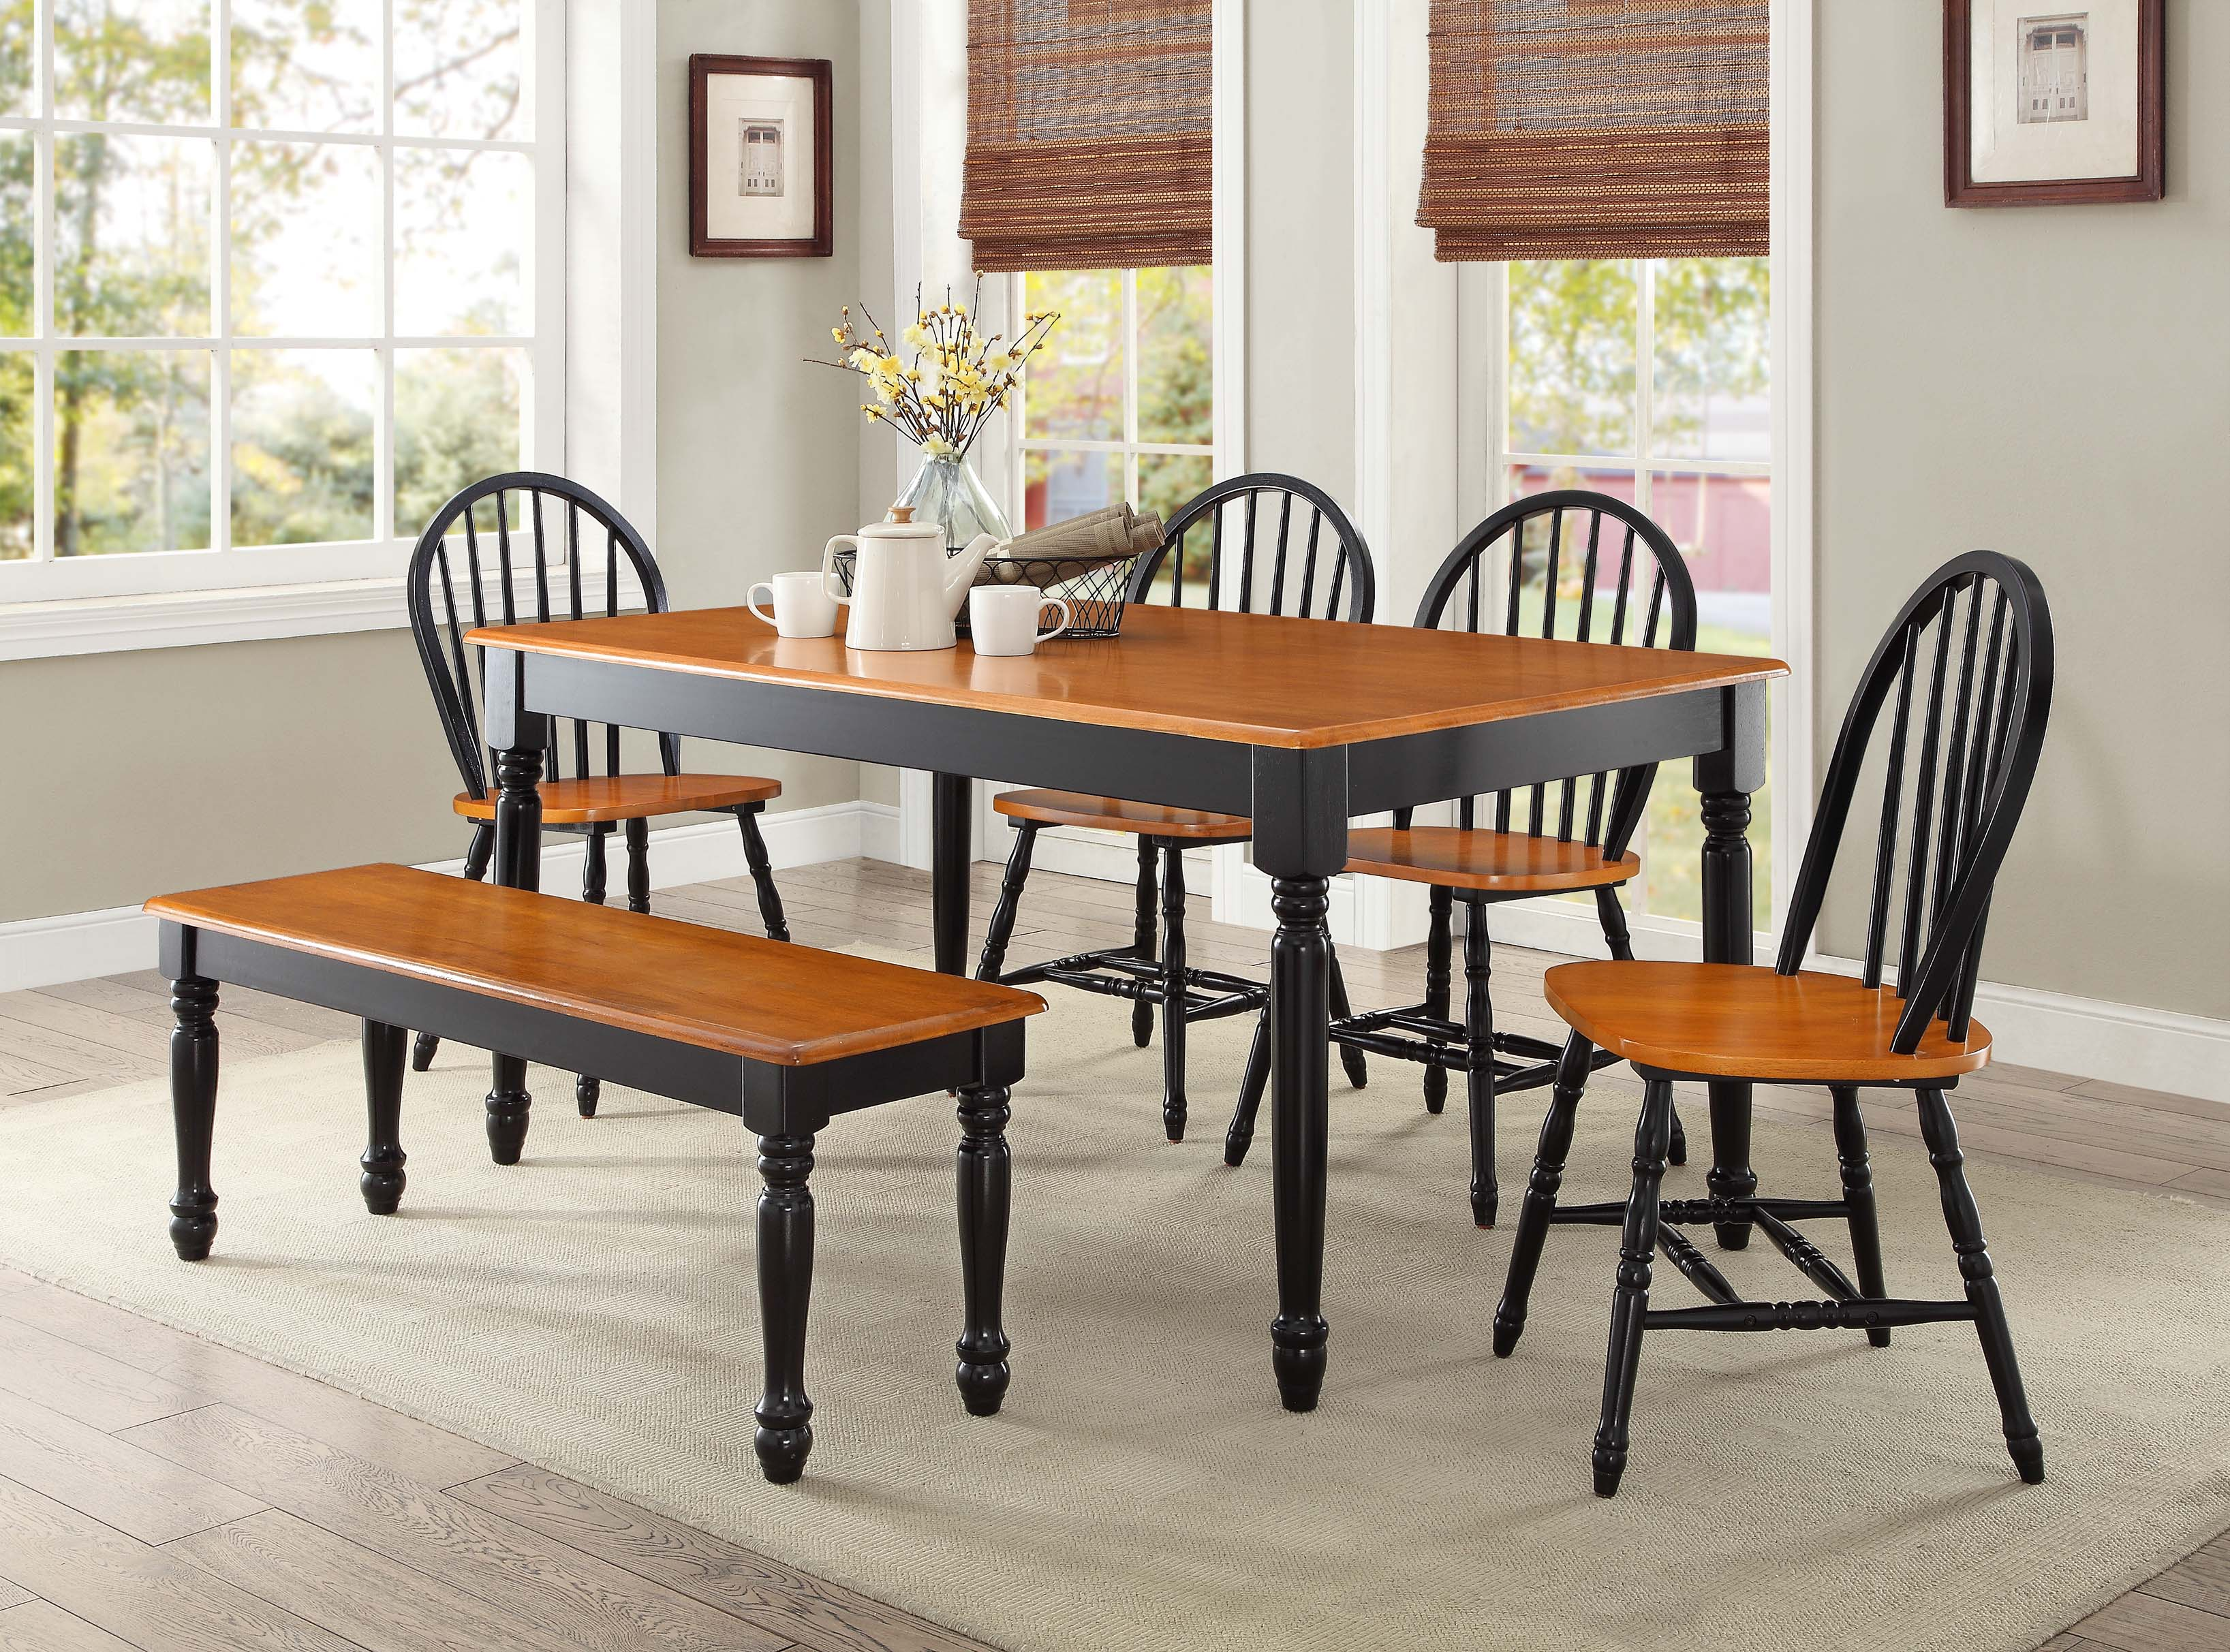 Dining Room Table Pictures Impressive Kitchen & Dining Furniture  Walmart Decorating Design